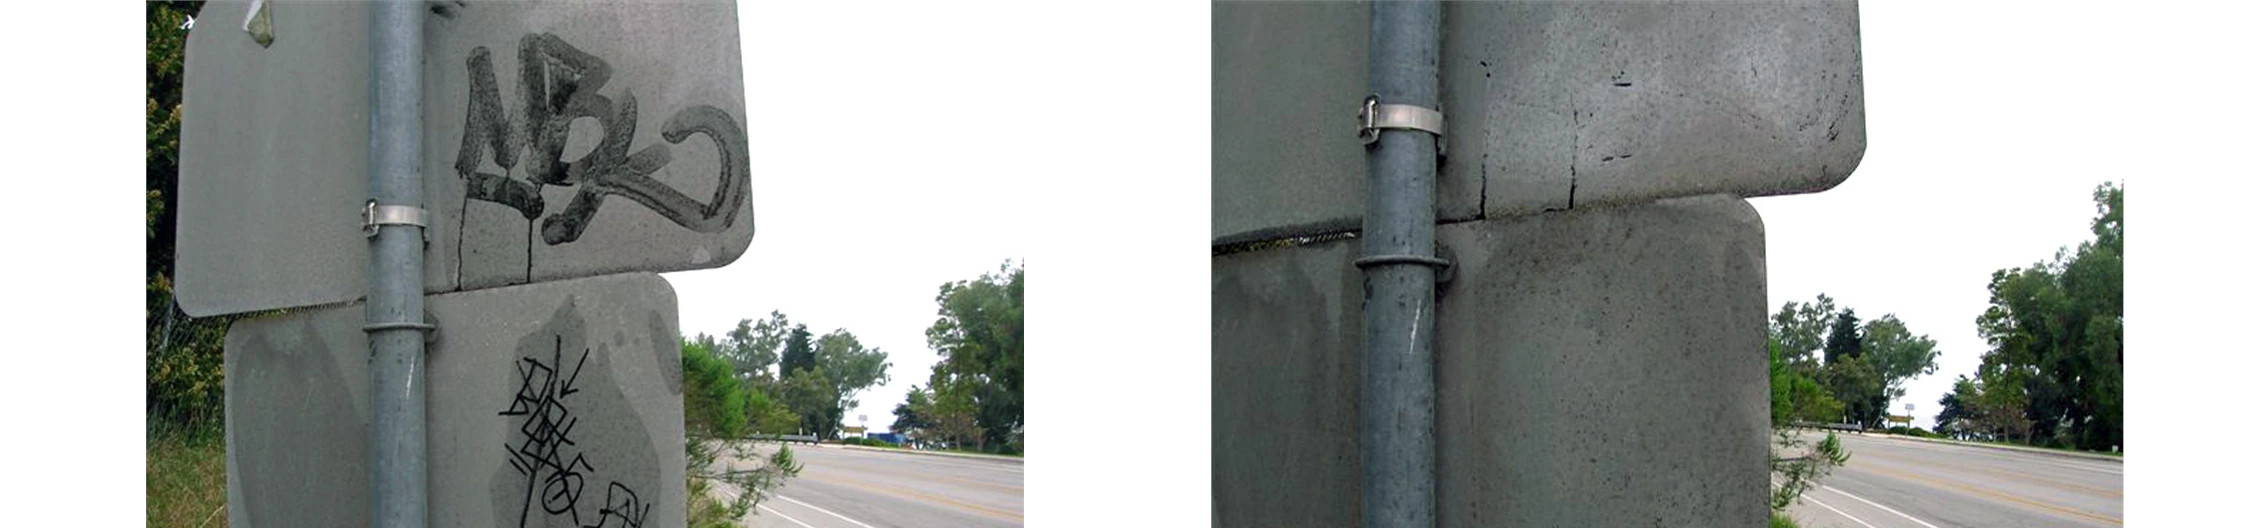 remove graffiti from street signs